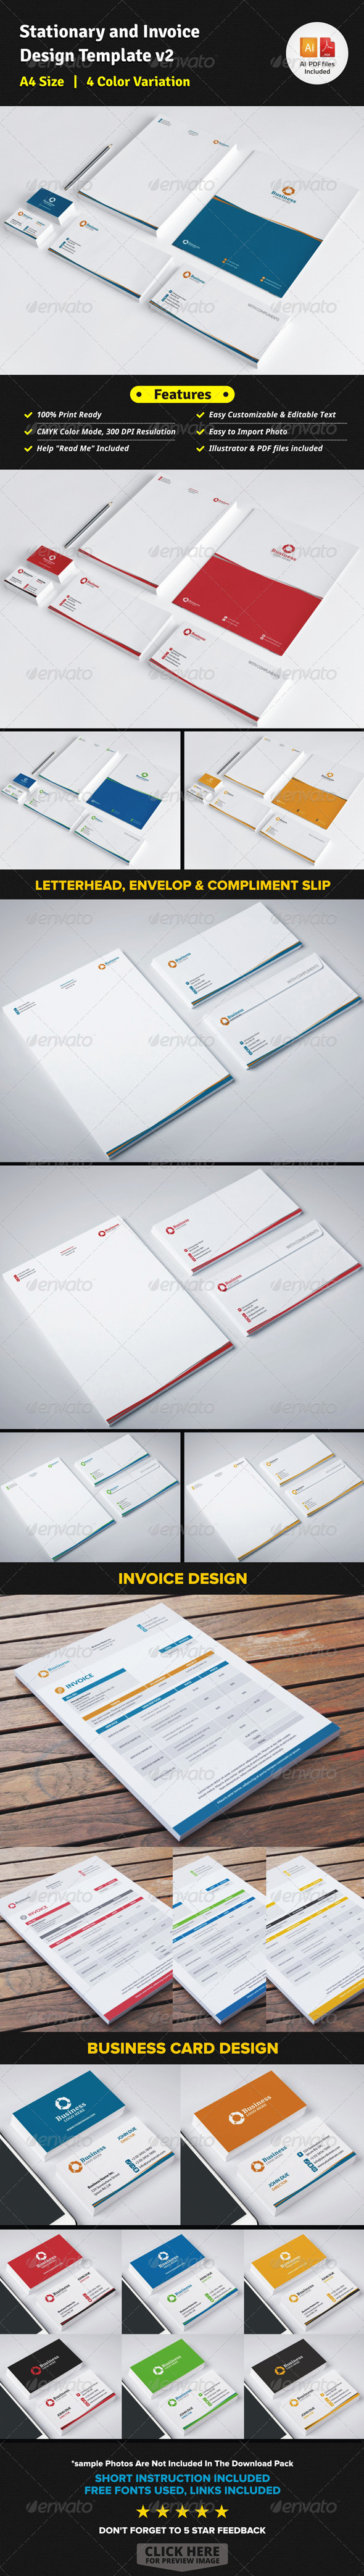 GraphicRiver Stationary & Invoice Design Template v2 7668698